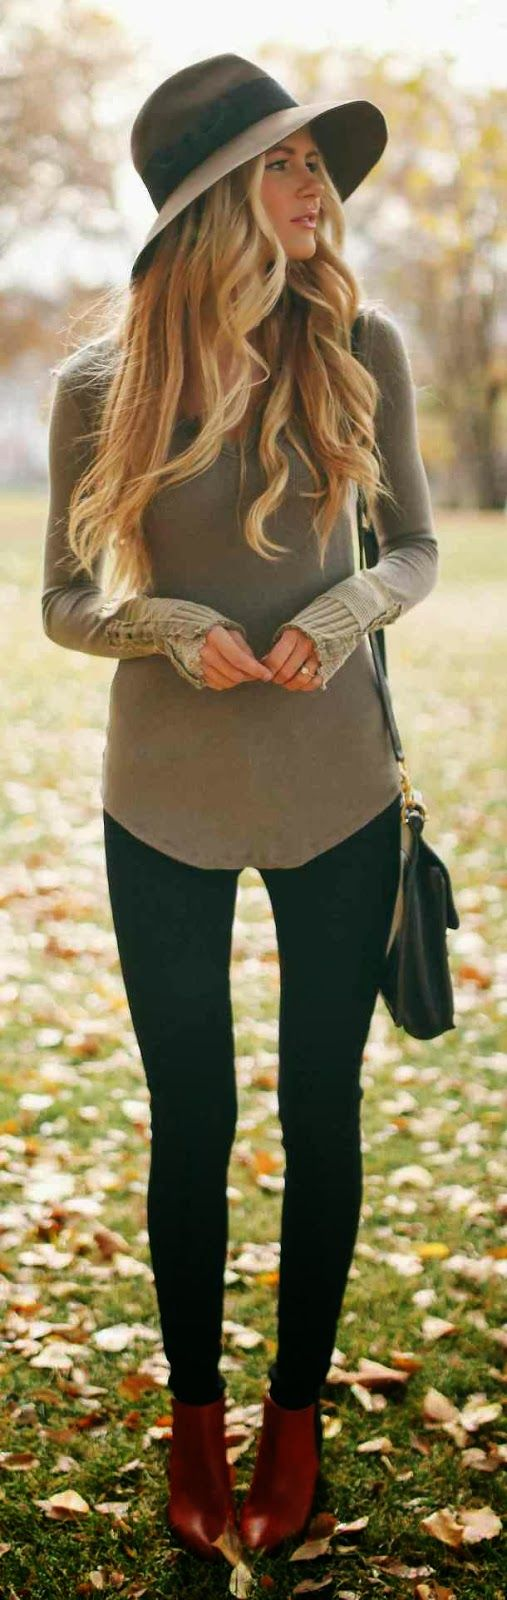 Gorg fall street fashion style in brown and black. Can I have the legs too : )